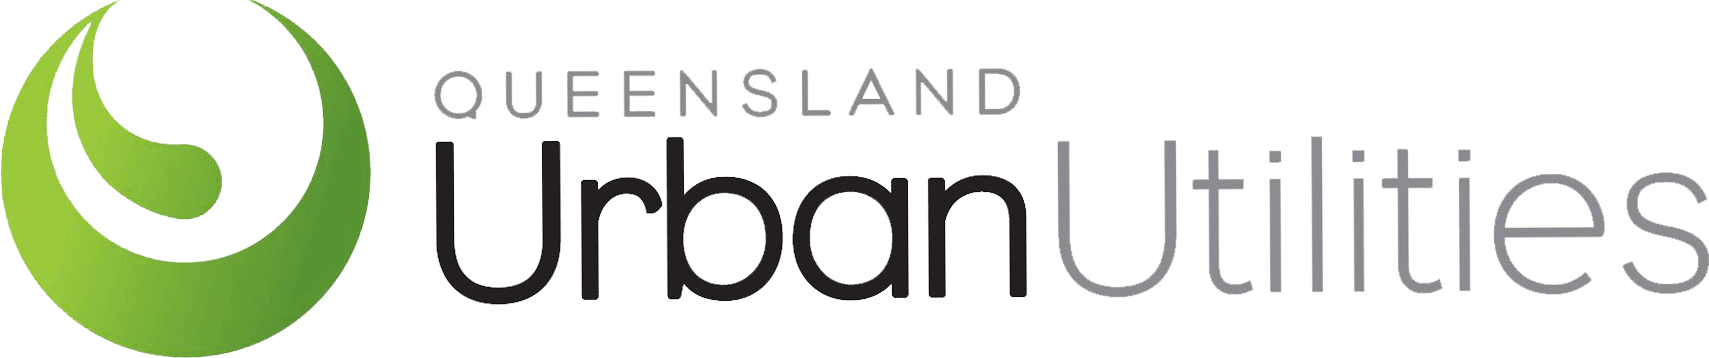 Queensland Customer Logo